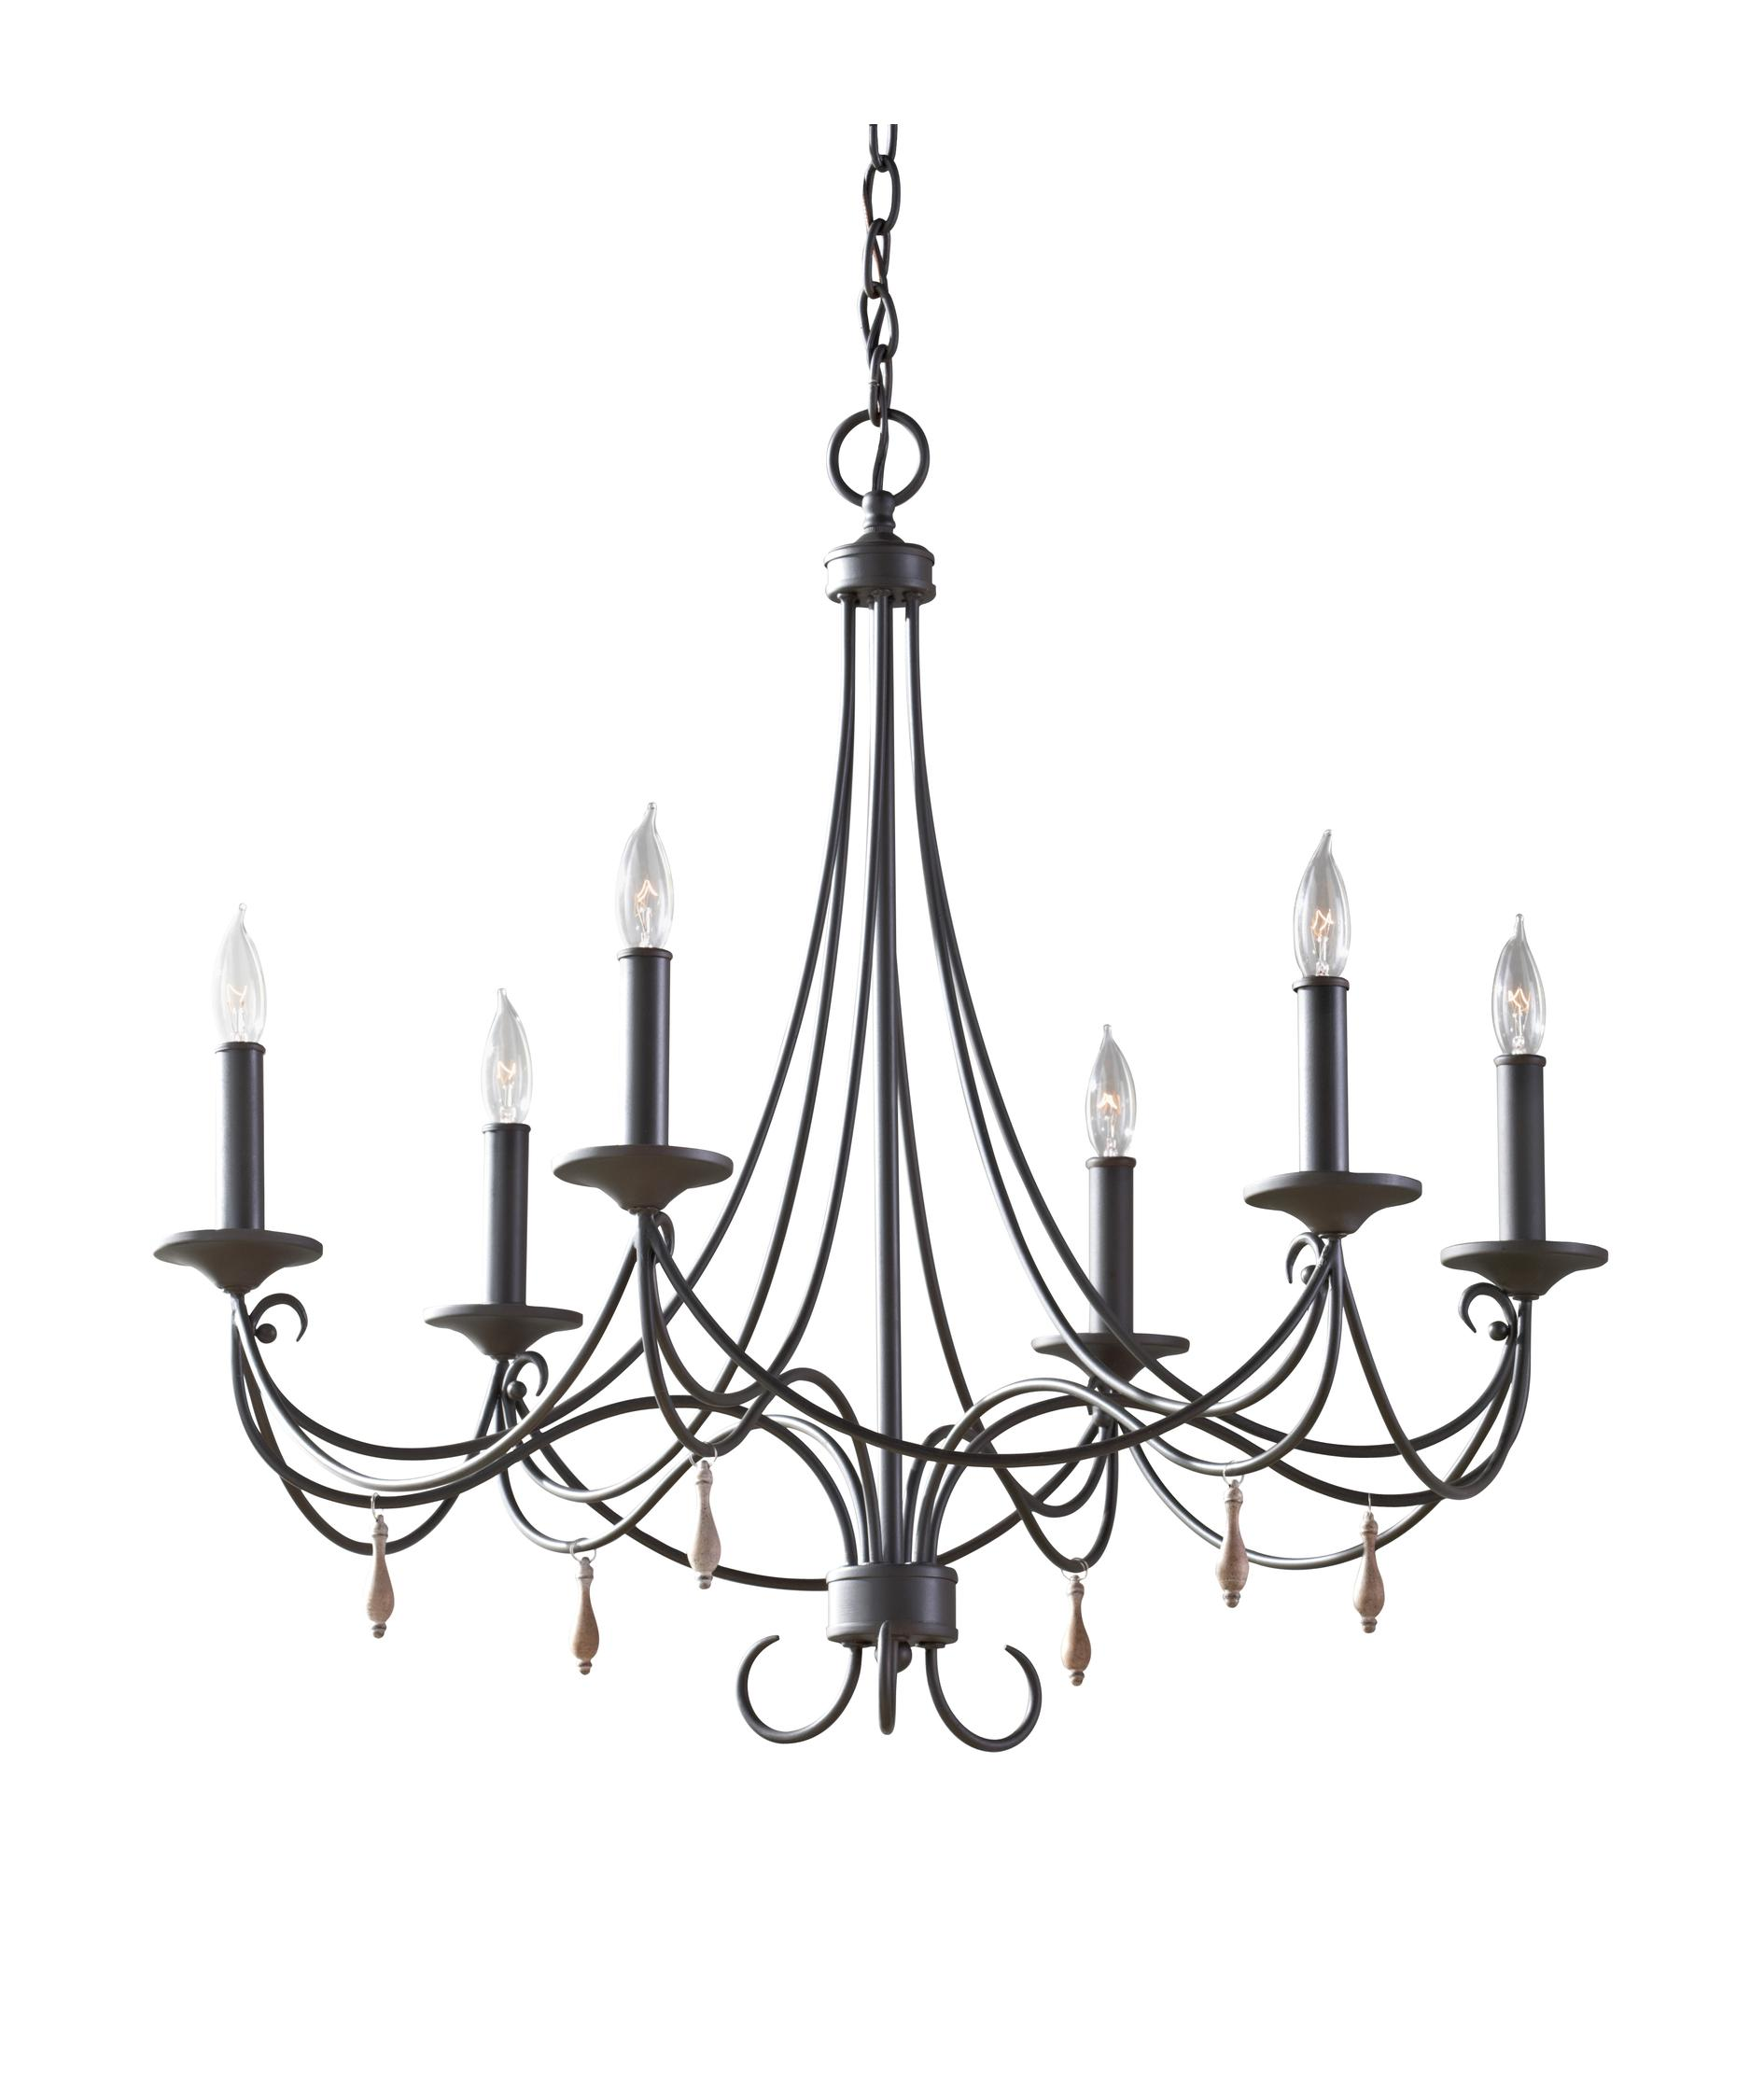 Murray Feiss Aliya 28 Inch Wide 6 Light Chandelier – Murray Feiss Chandeliers